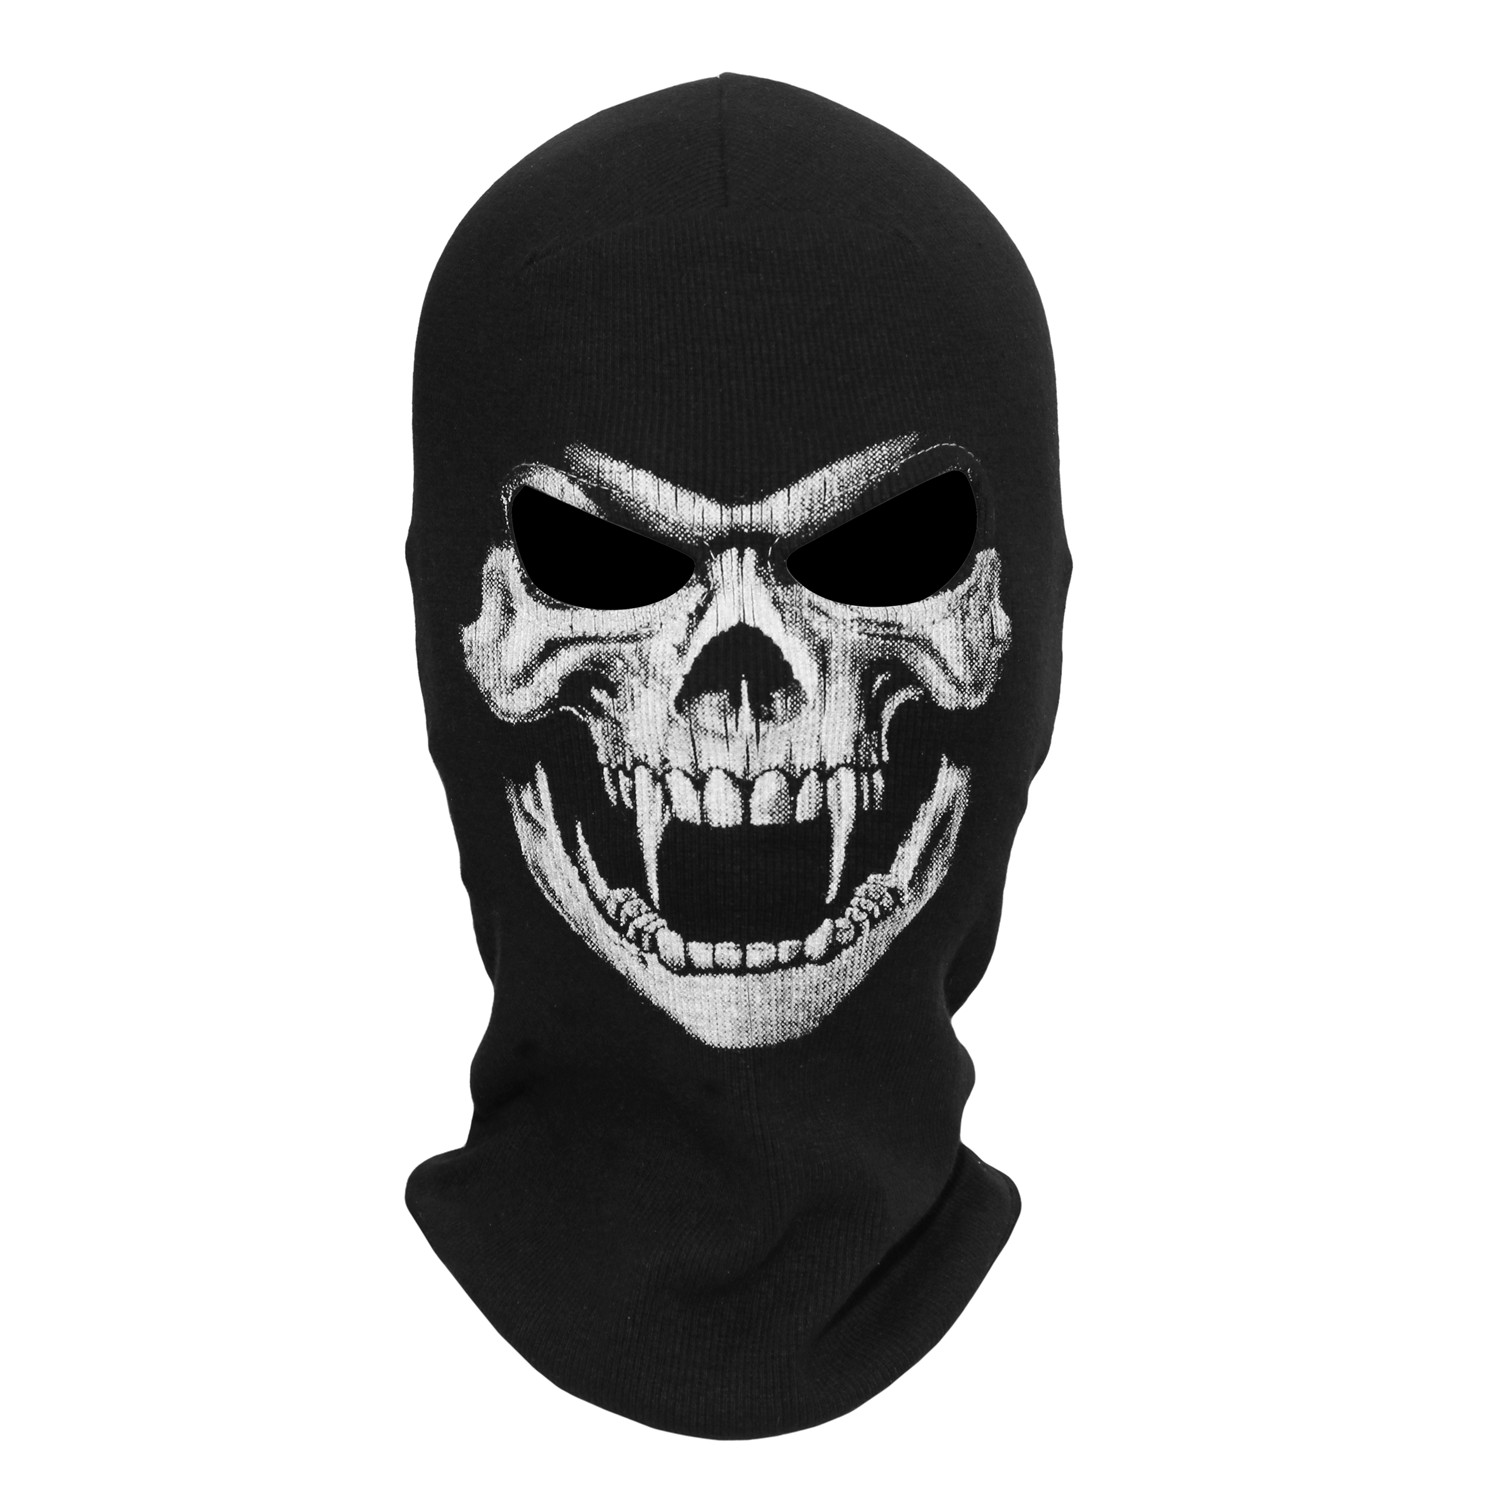 Popular Mask Military-Buy Cheap Mask Military lots from China Mask ...